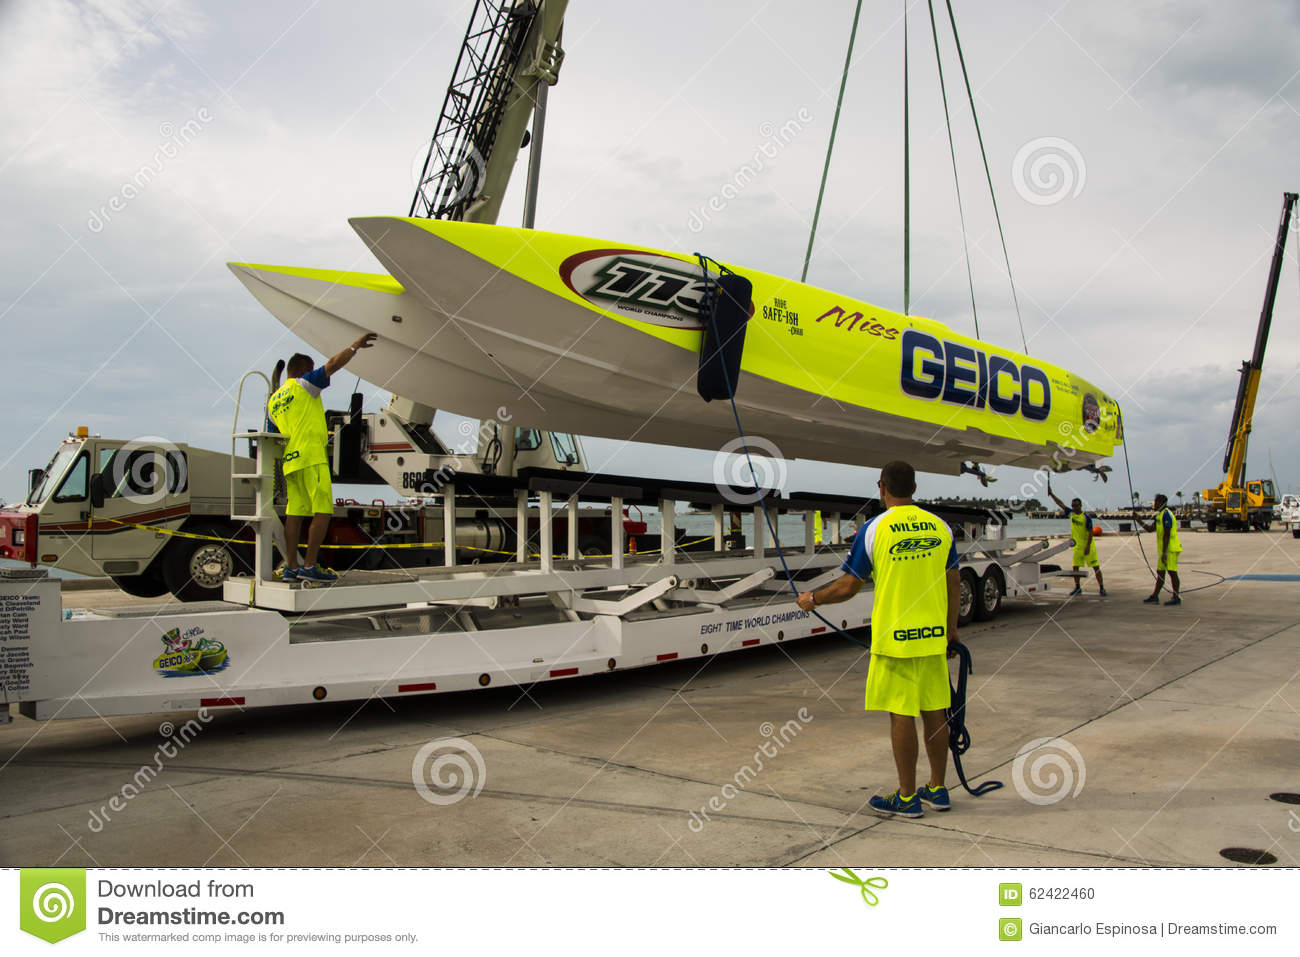 Miss Geico Superboat Editorial Image - Image: 62422460